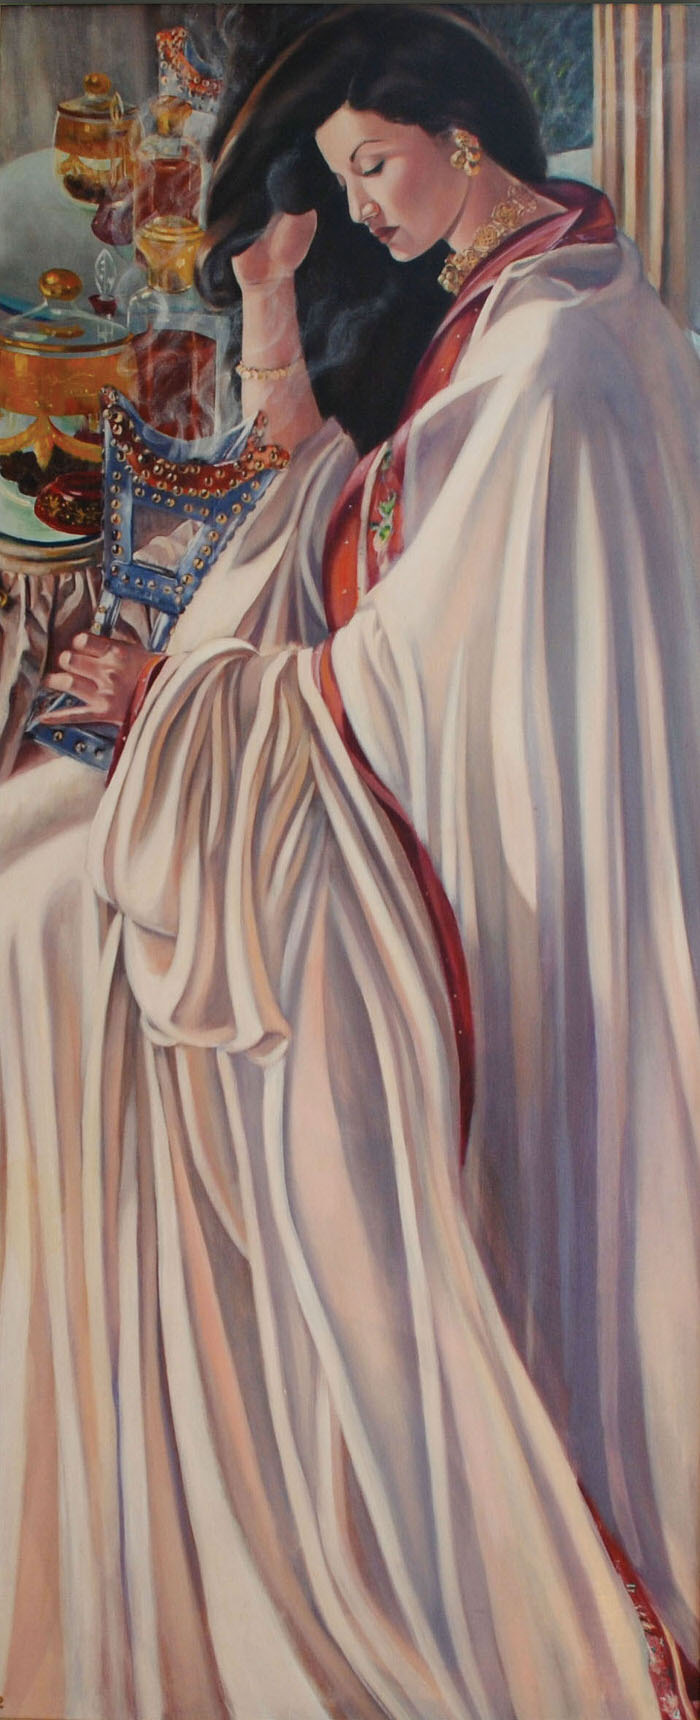 El Aroos, 1994, Oil on canvas, 197 x 90 cm